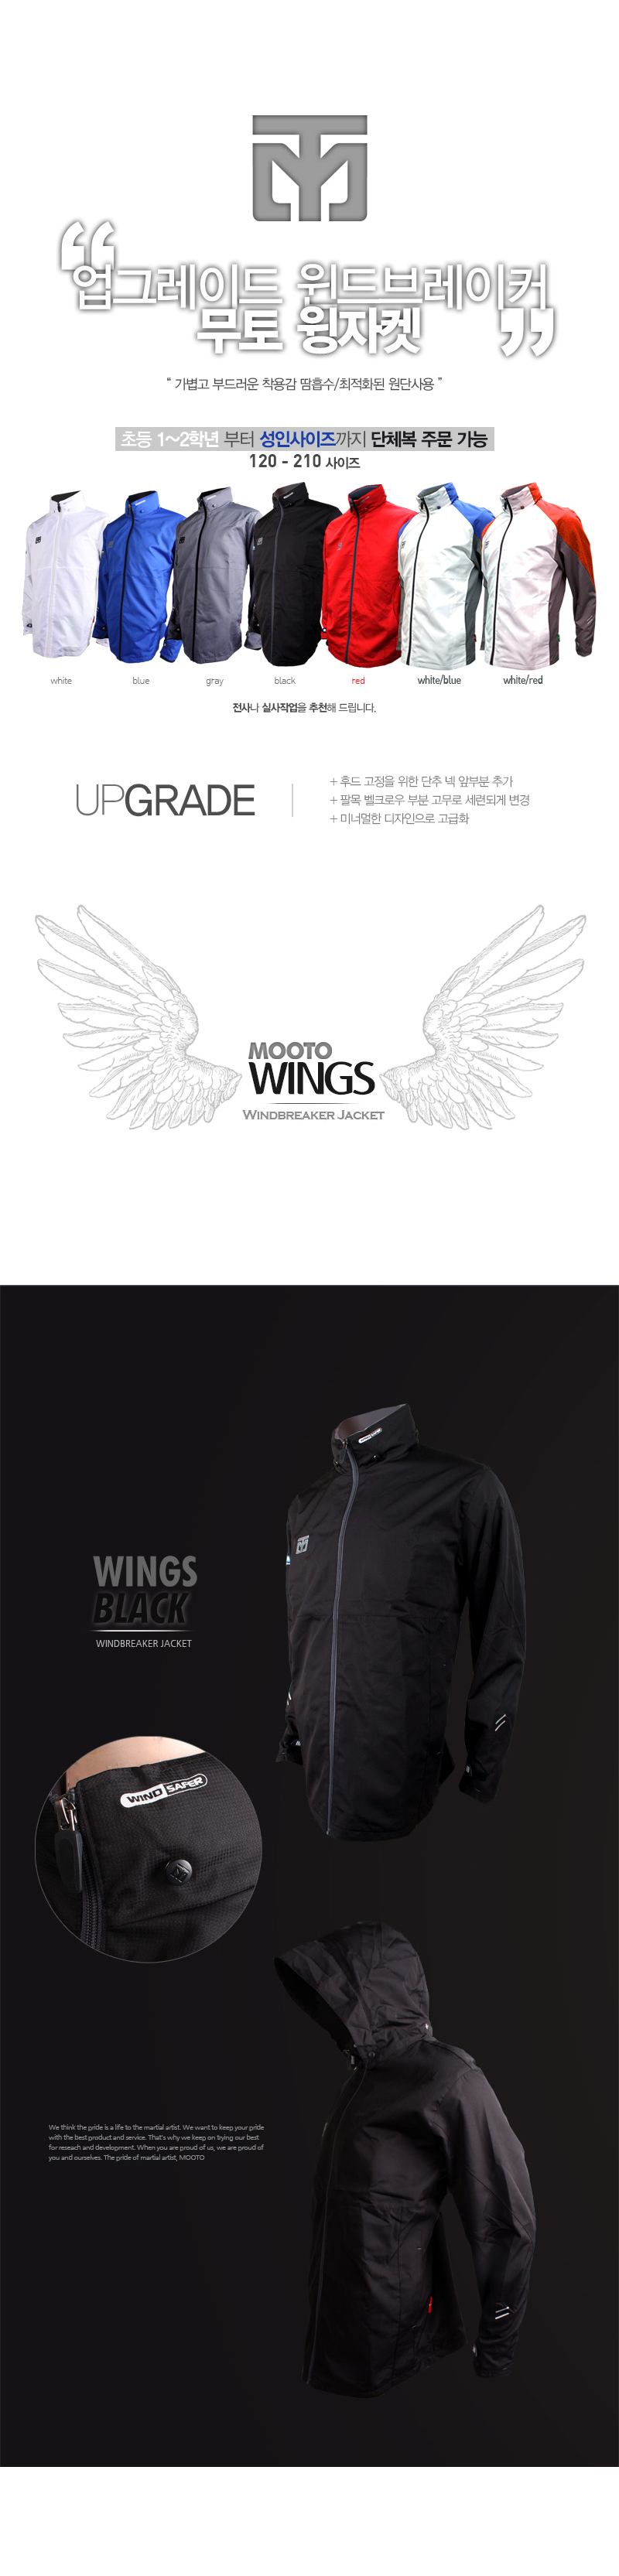 wing_black_view